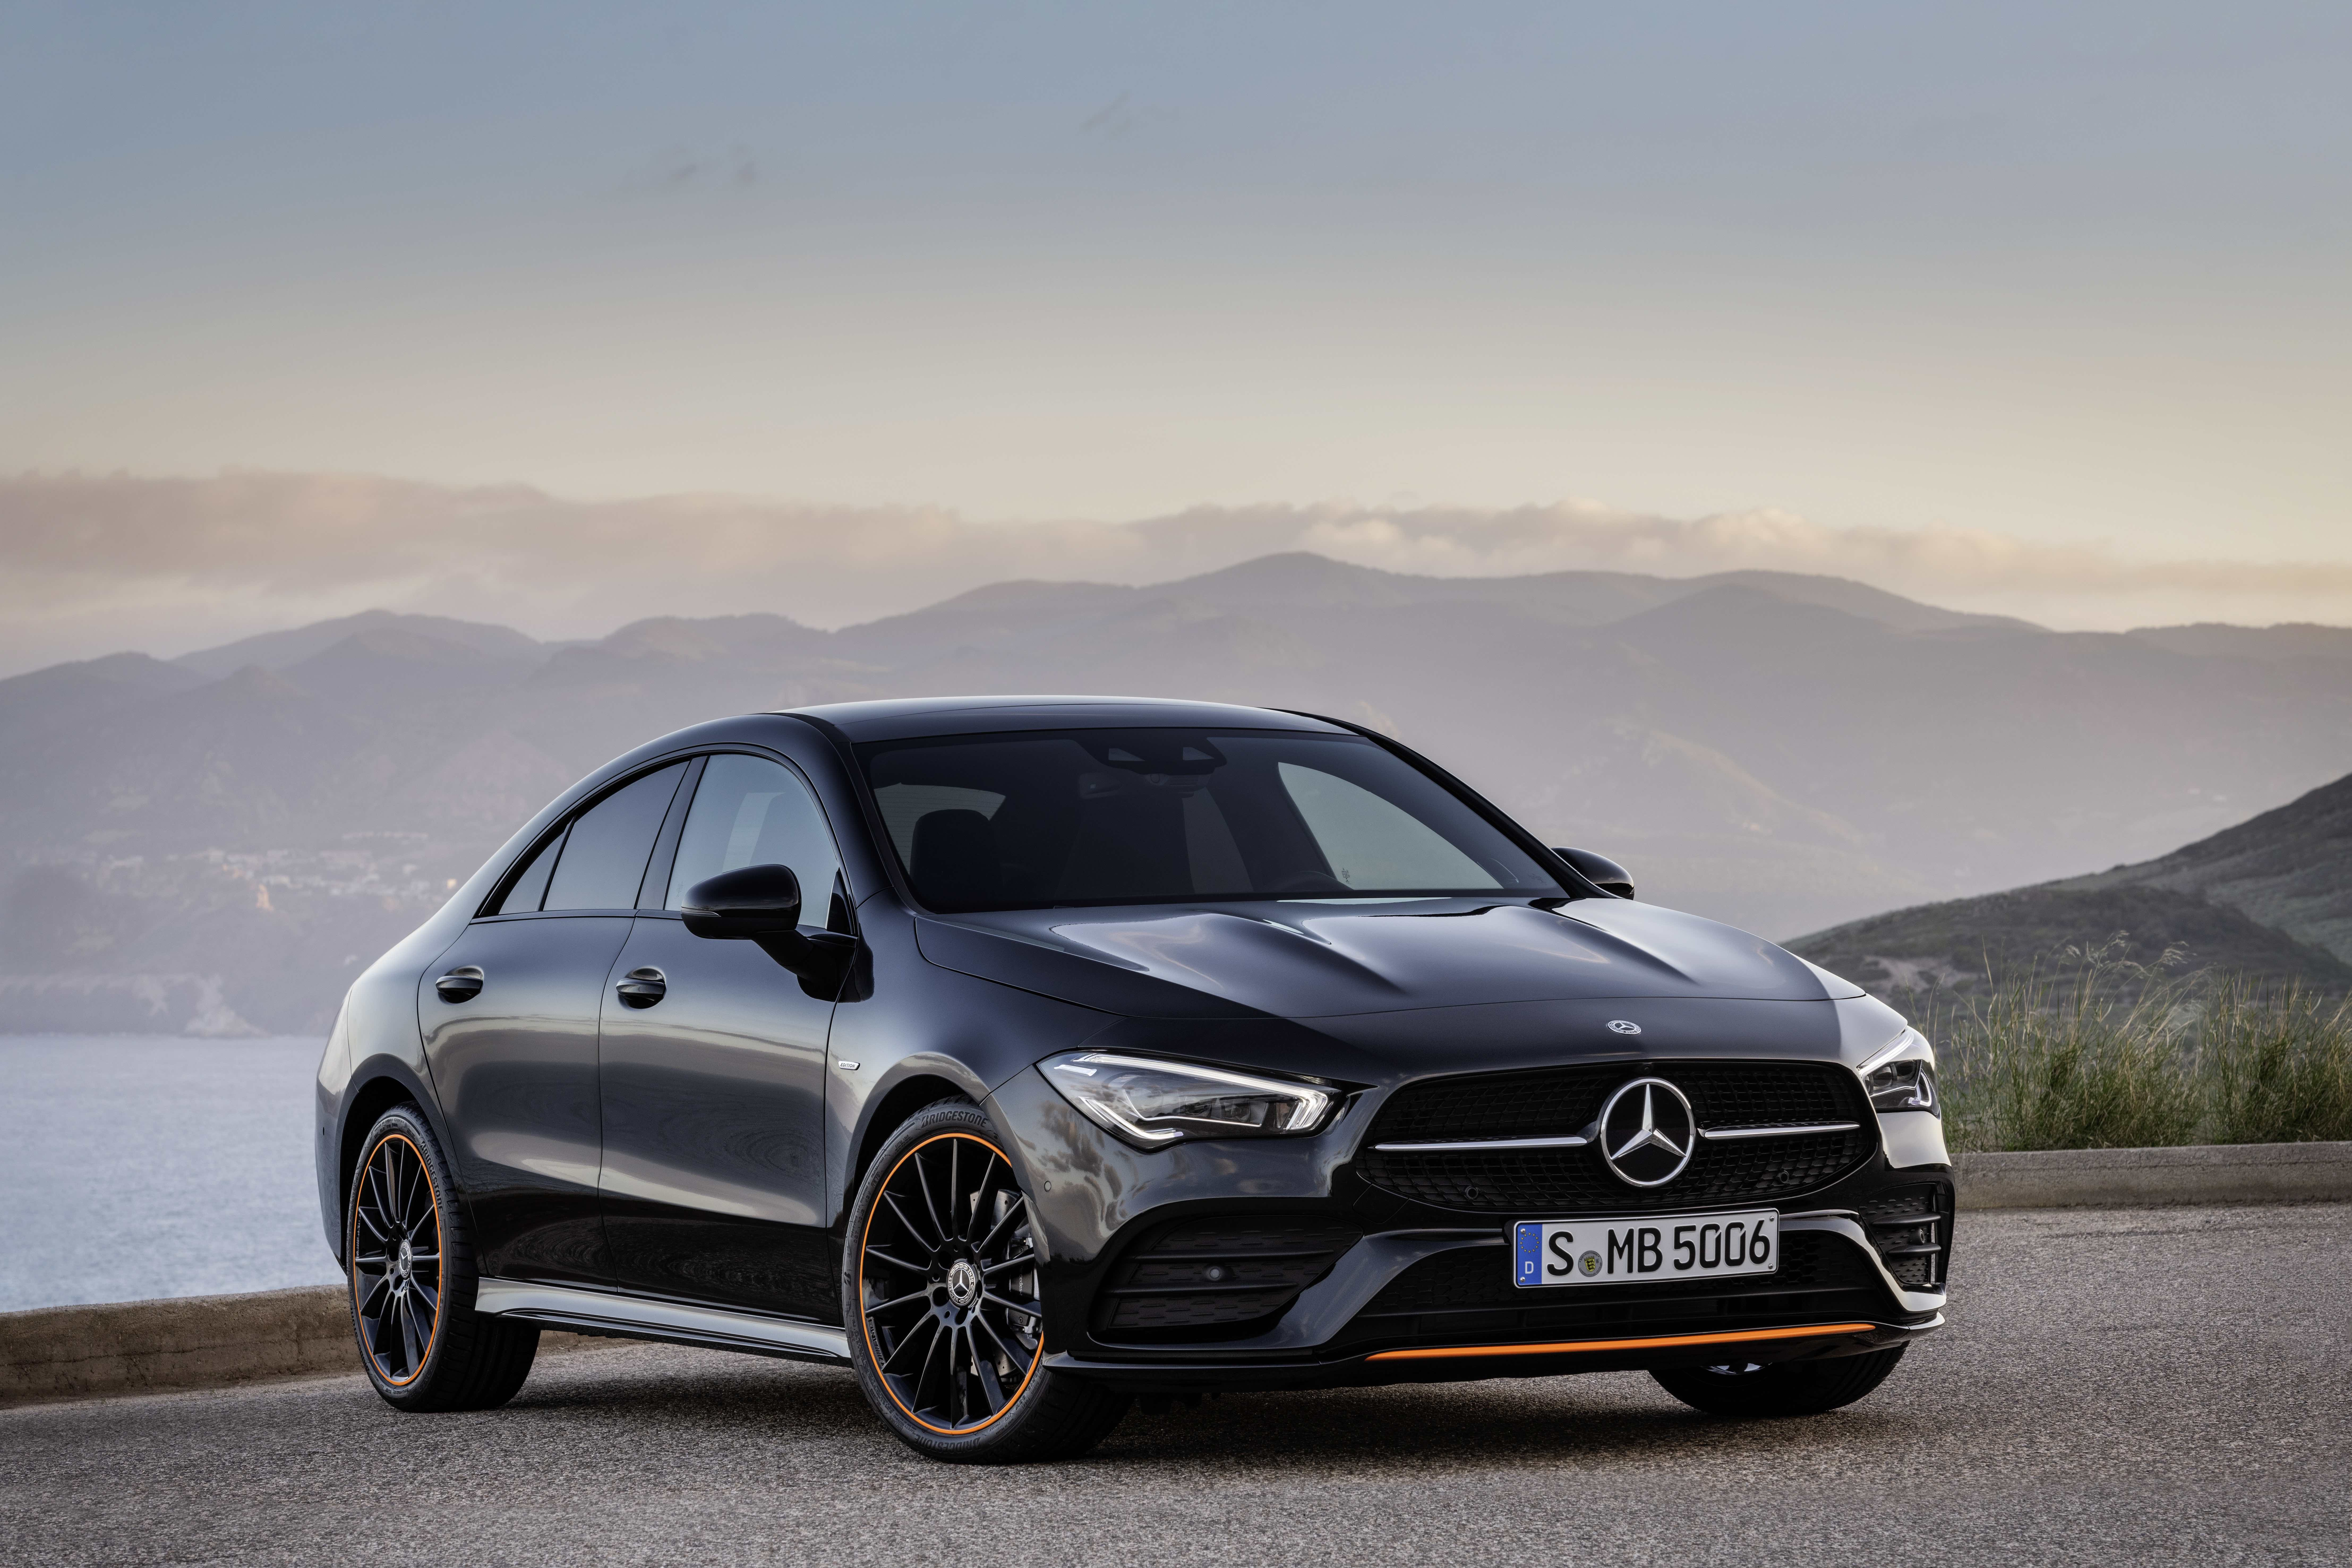 82 All New Mercedes Cla 2019 Release Date Performance and New Engine with Mercedes Cla 2019 Release Date